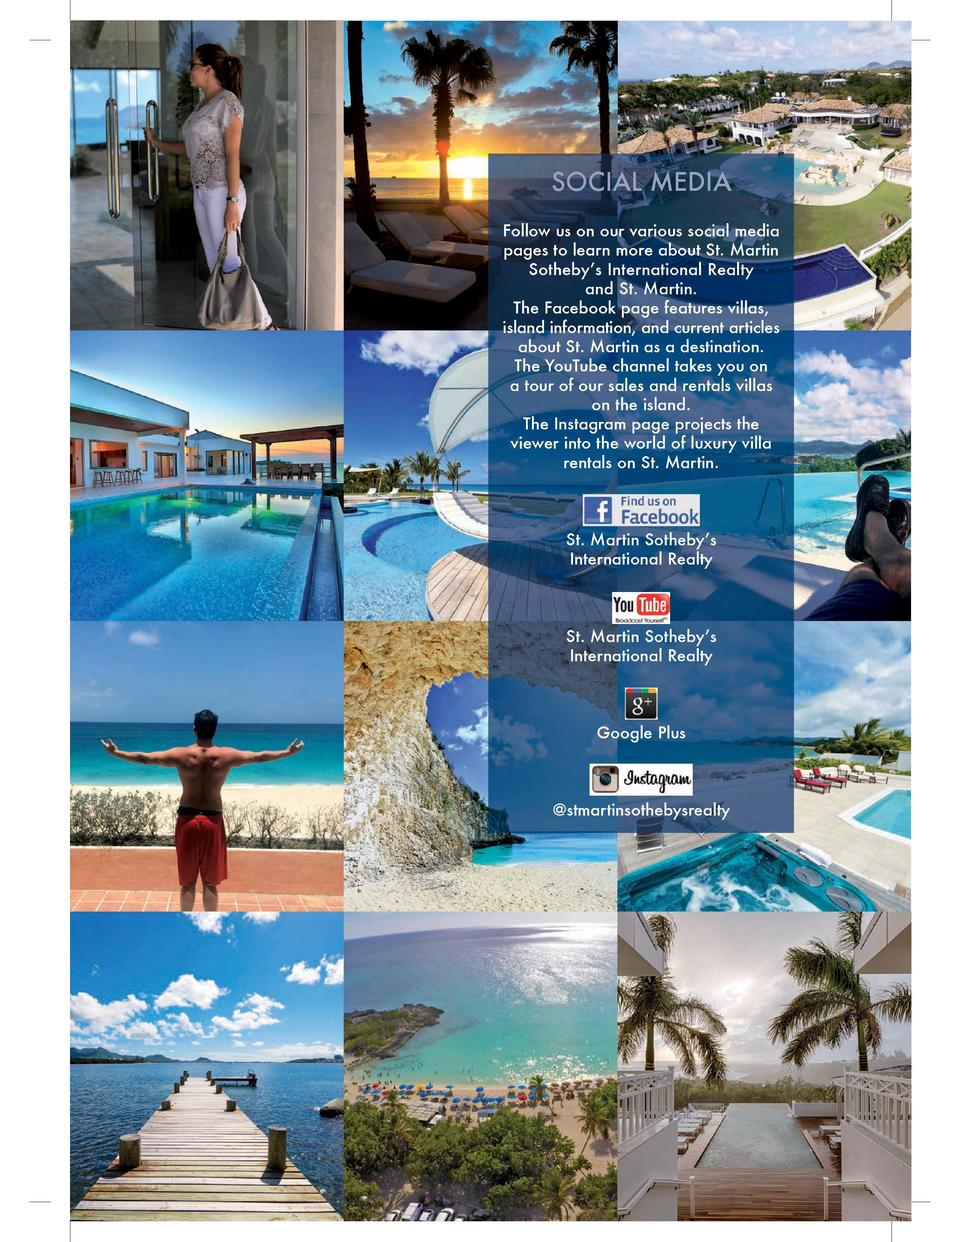 SOCIAL MEDIA Follow us on our various social media pages to learn more about St. Martin Sotheby   s International Realty a...